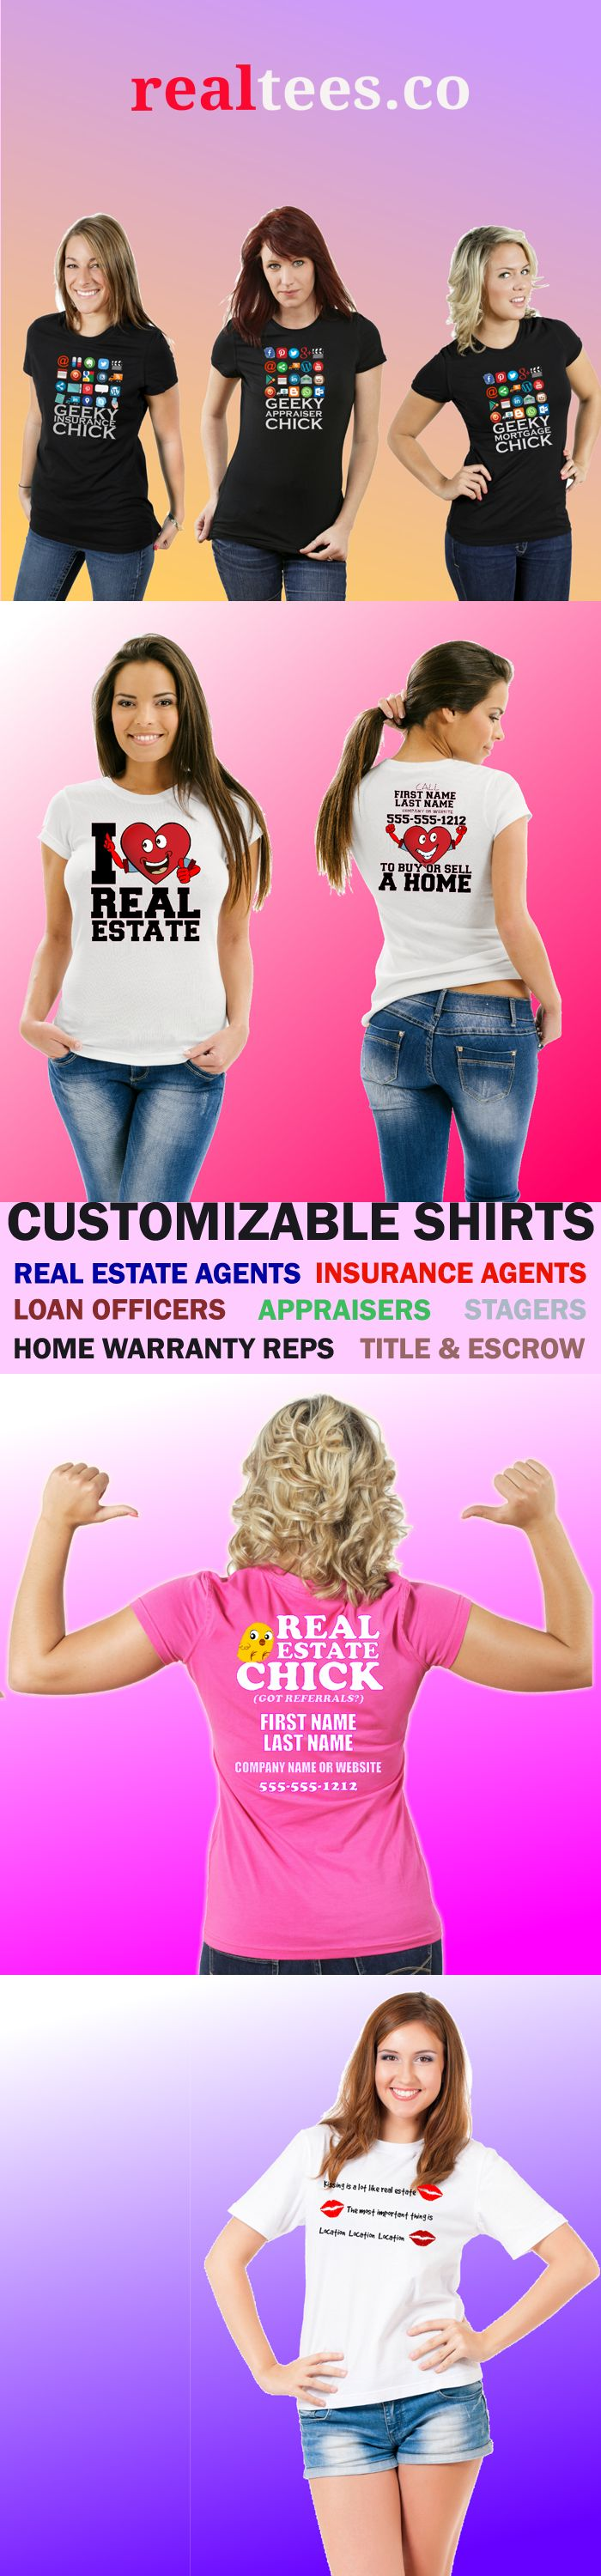 Real estate casual fashionistas know a call to action sparks a conversation about real estate wherever you wear our shirts - at the gym, in the market, at a picnic. And now, these shirts are not just for real estate agents. Check out our growing collection of shirts for mortgage loan officers, appraisers, home warranty reps, title and escrow agents, and insurance agents.